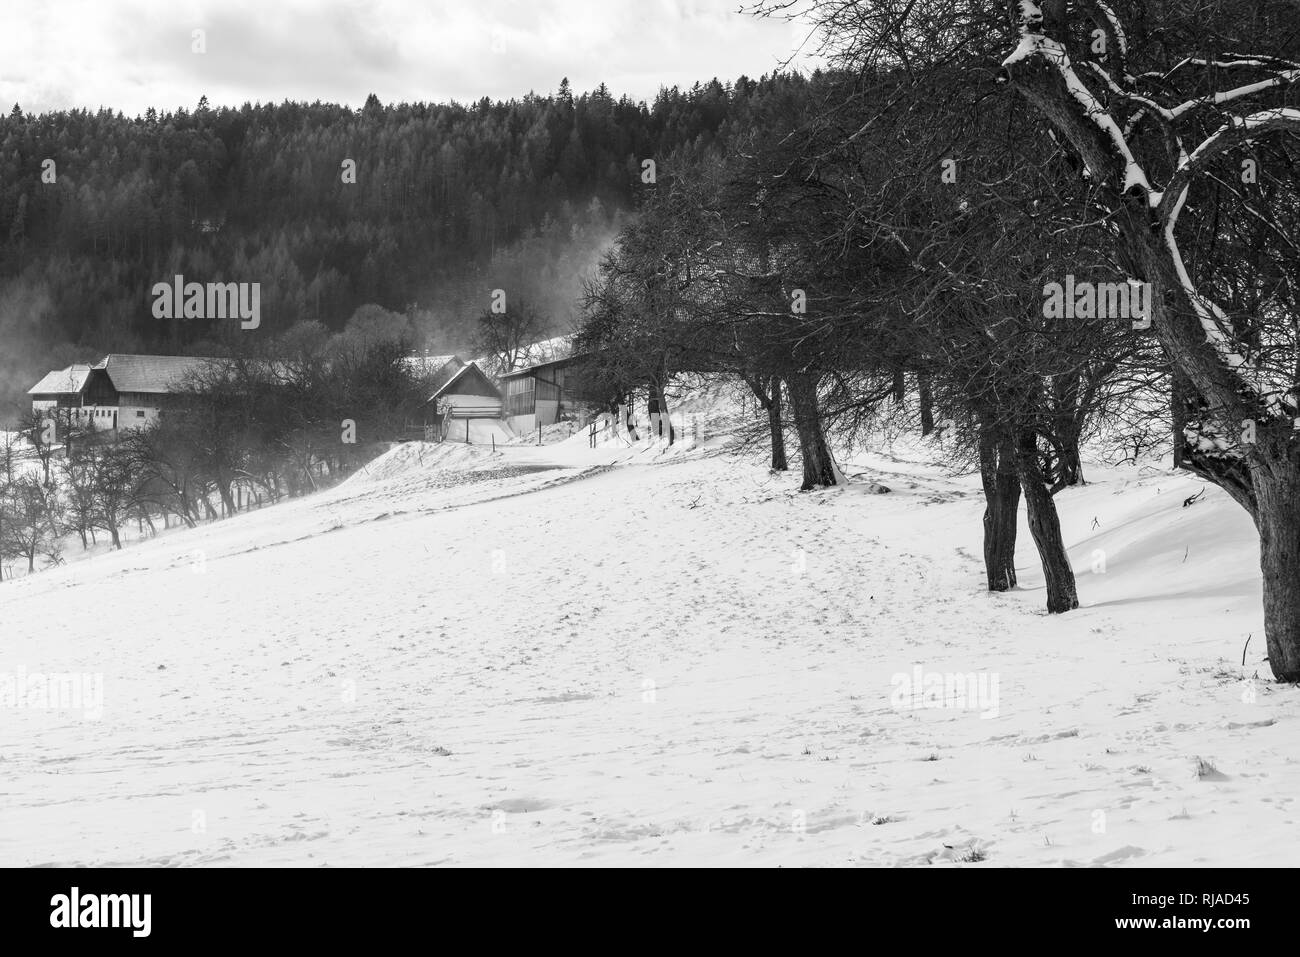 Monochrome rural snowy winter landscape with trees,field,farm,forest on a windy day with light snowfall - Stock Image